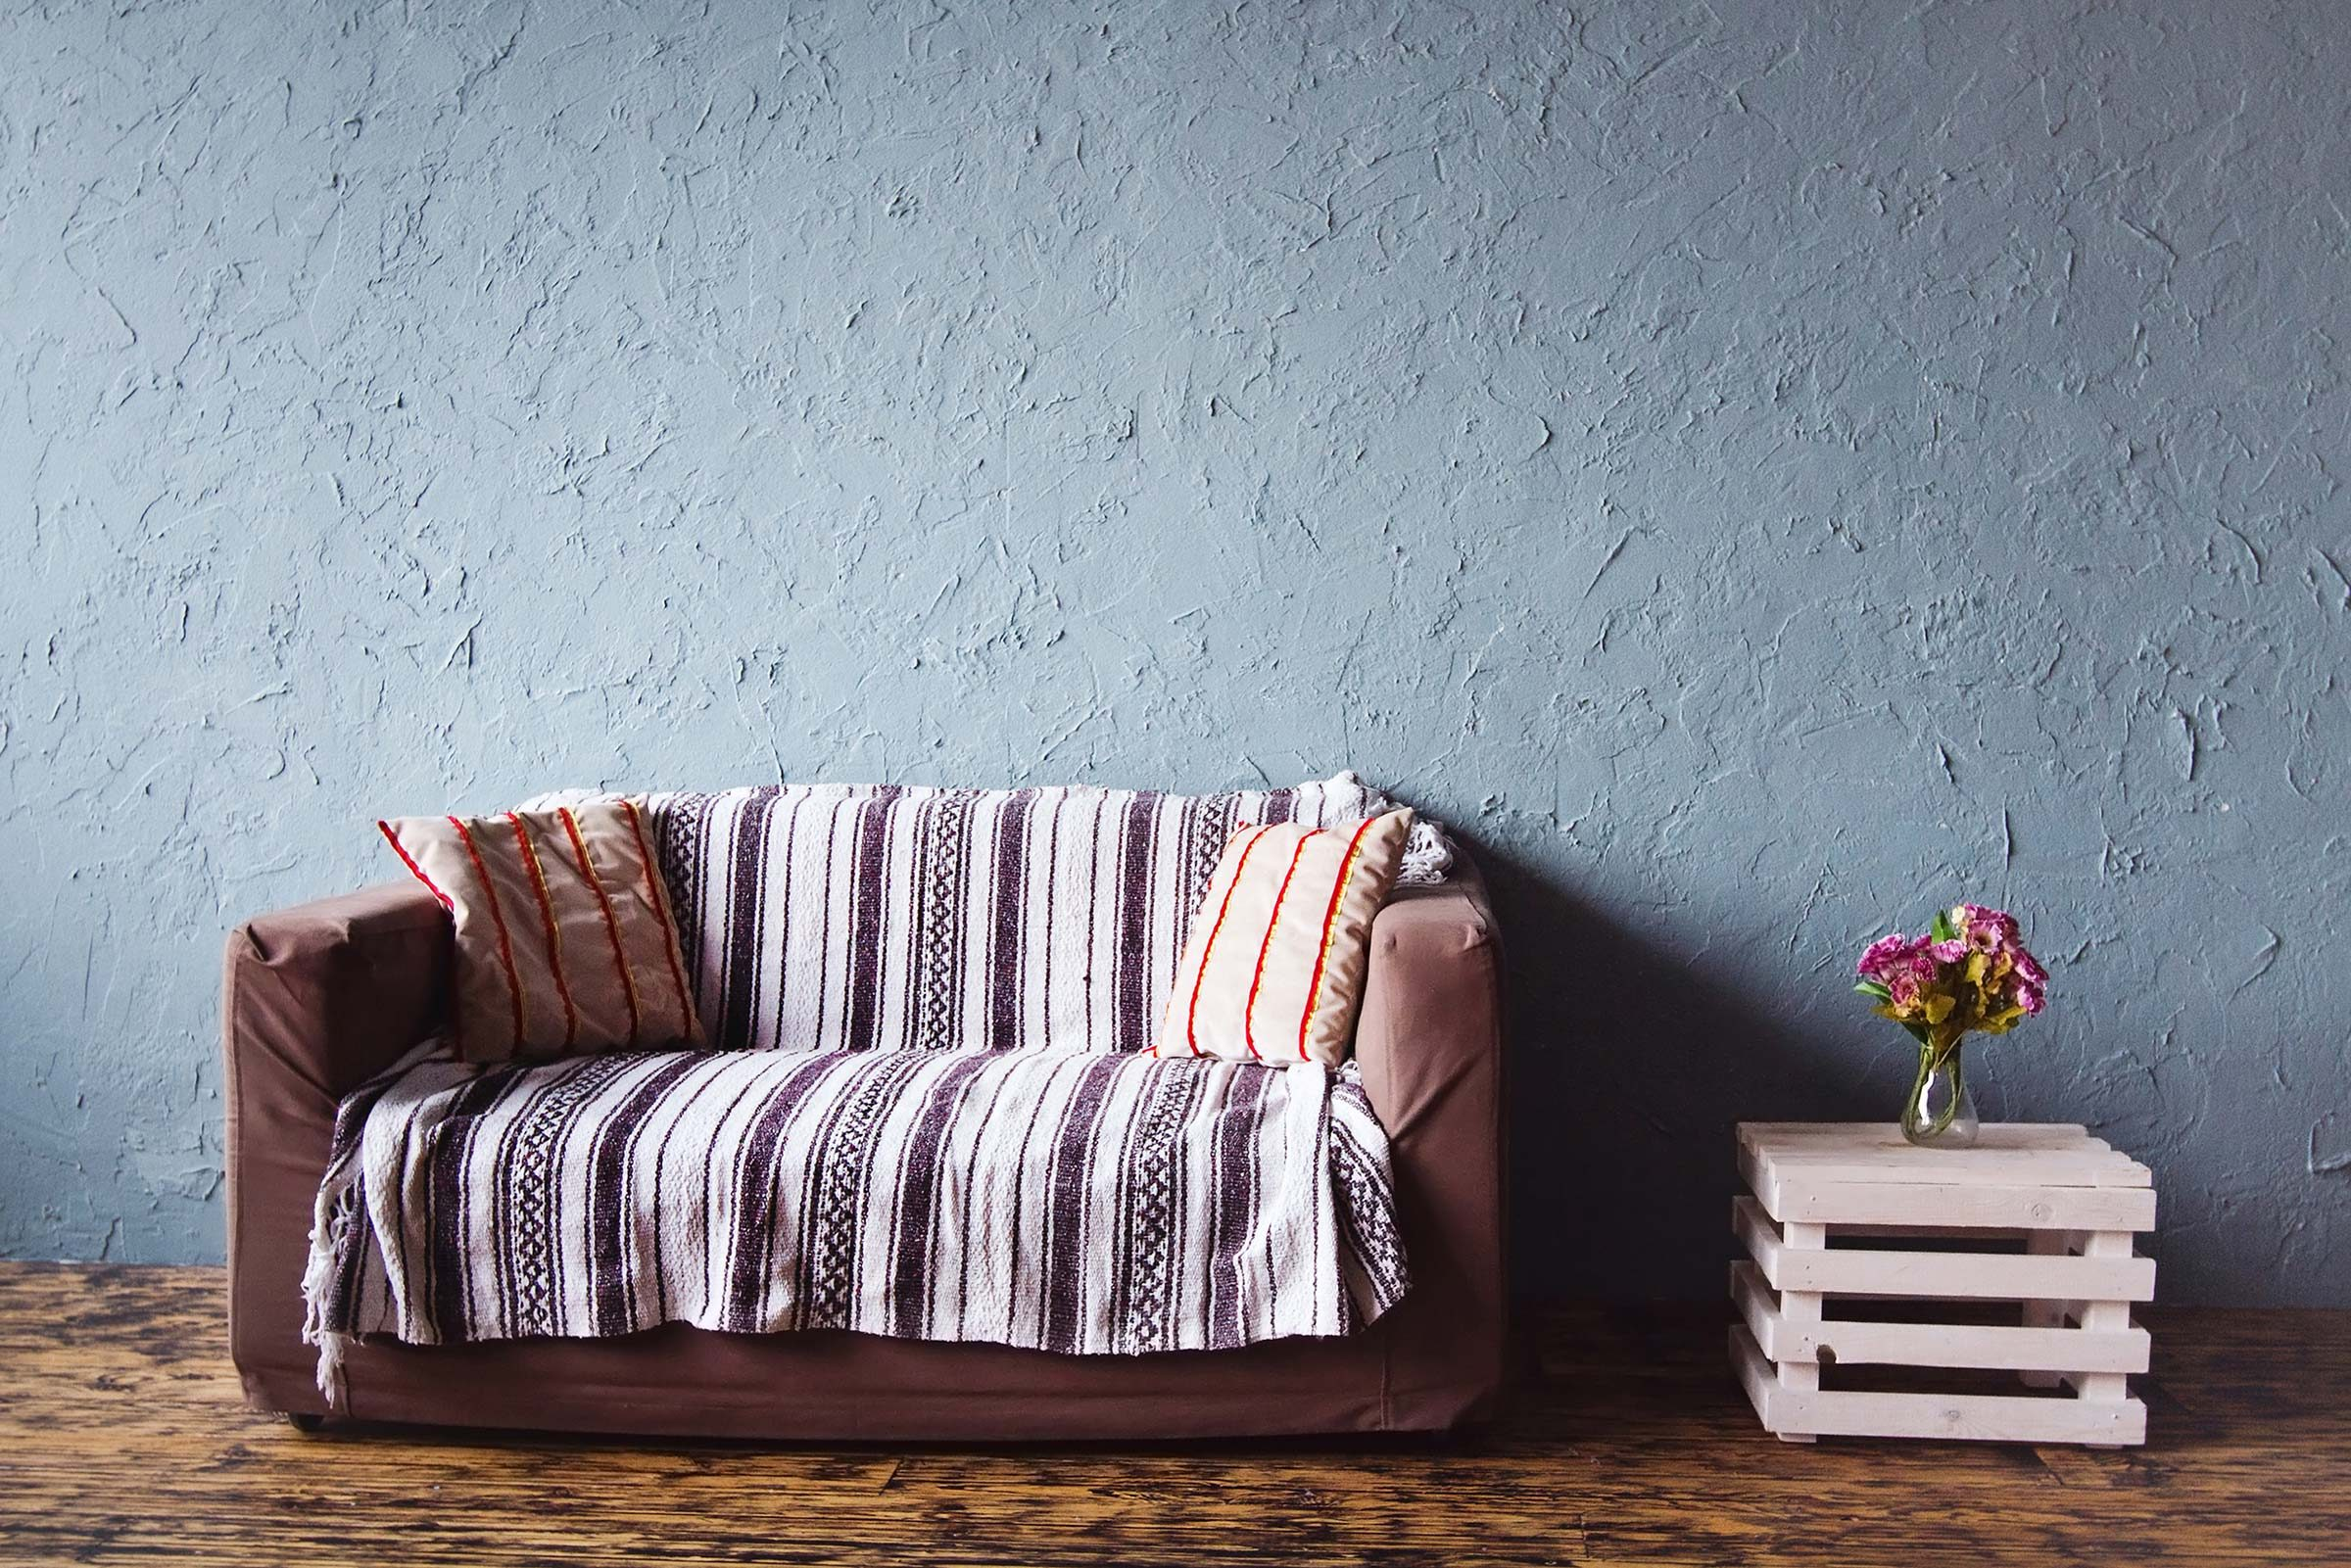 Decorate and Style Your Couch Without Reupholstering